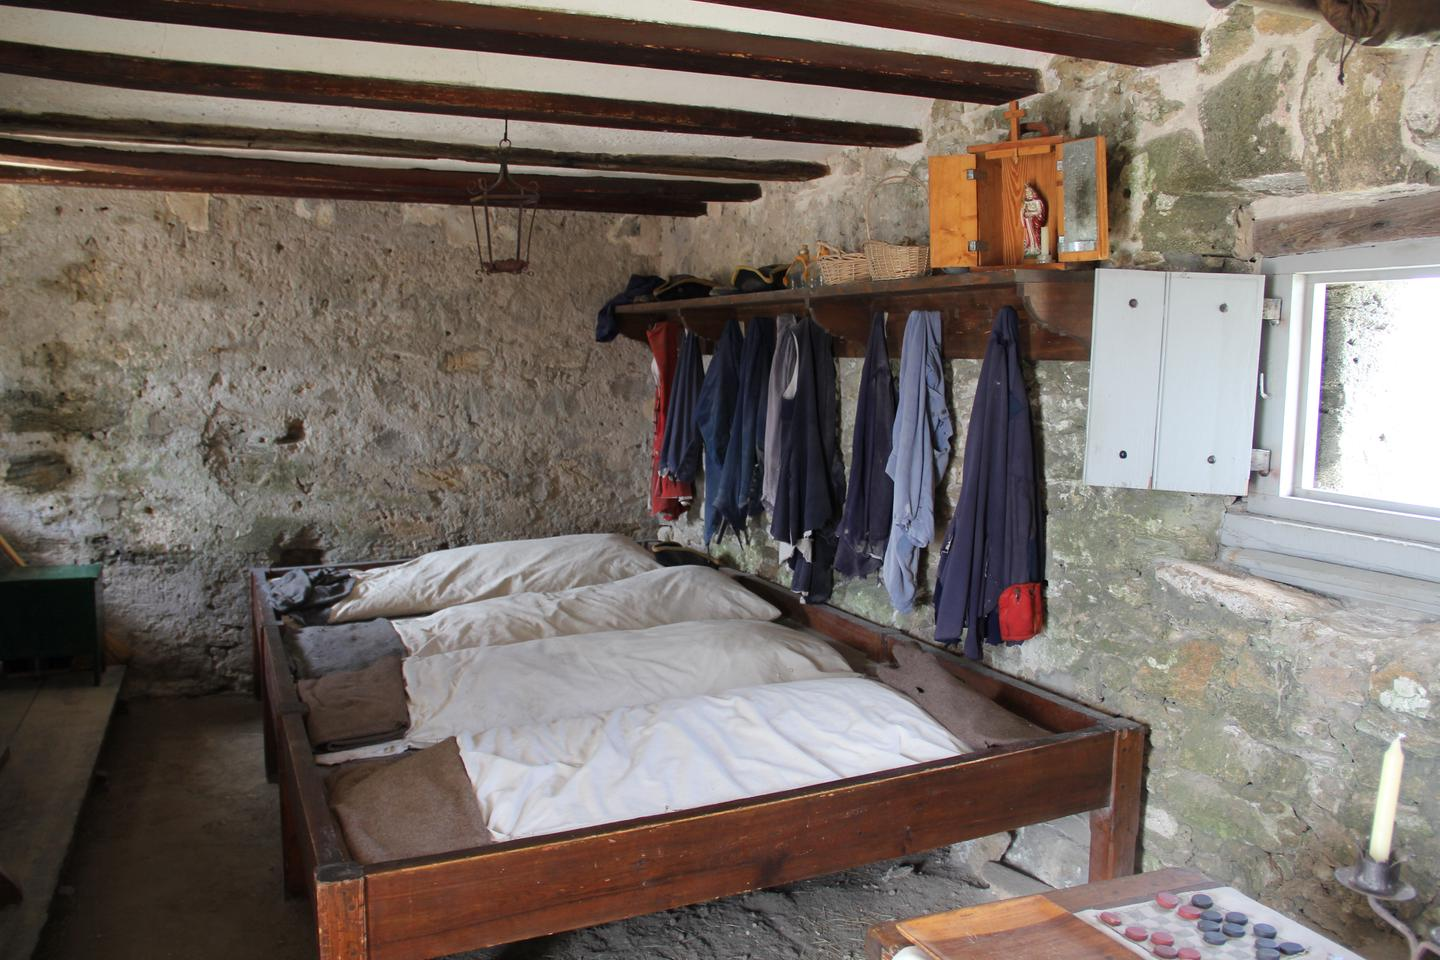 Soldier's QuartersThe few enlisted soldiers at Fort Matanzas shared a small, sparse room as living space.